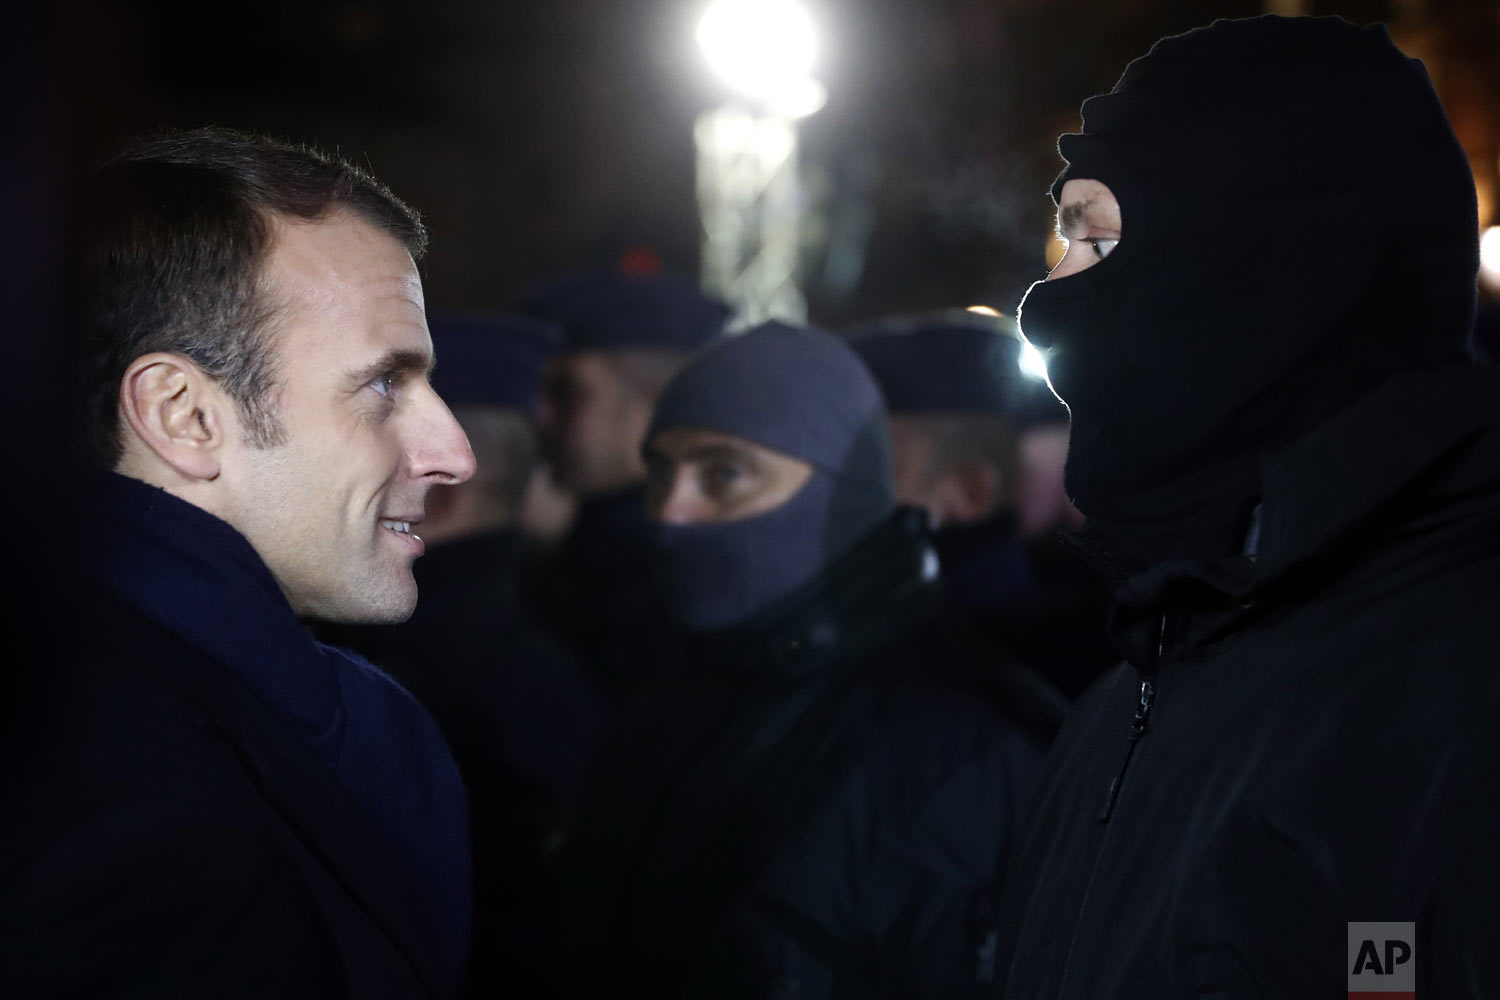 French President Emmanuel Macron meets police officers wearing hoods near the Christmas market in Strasbourg, eastern France, Friday, Dec.14, 2018. A fourth person died Friday from wounds suffered in an attack on the Christmas market in Strasbourg, as investigators worked to establish whether the main suspect had help while on the run. (AP Photo/Jean-Francois Badias, Pool)